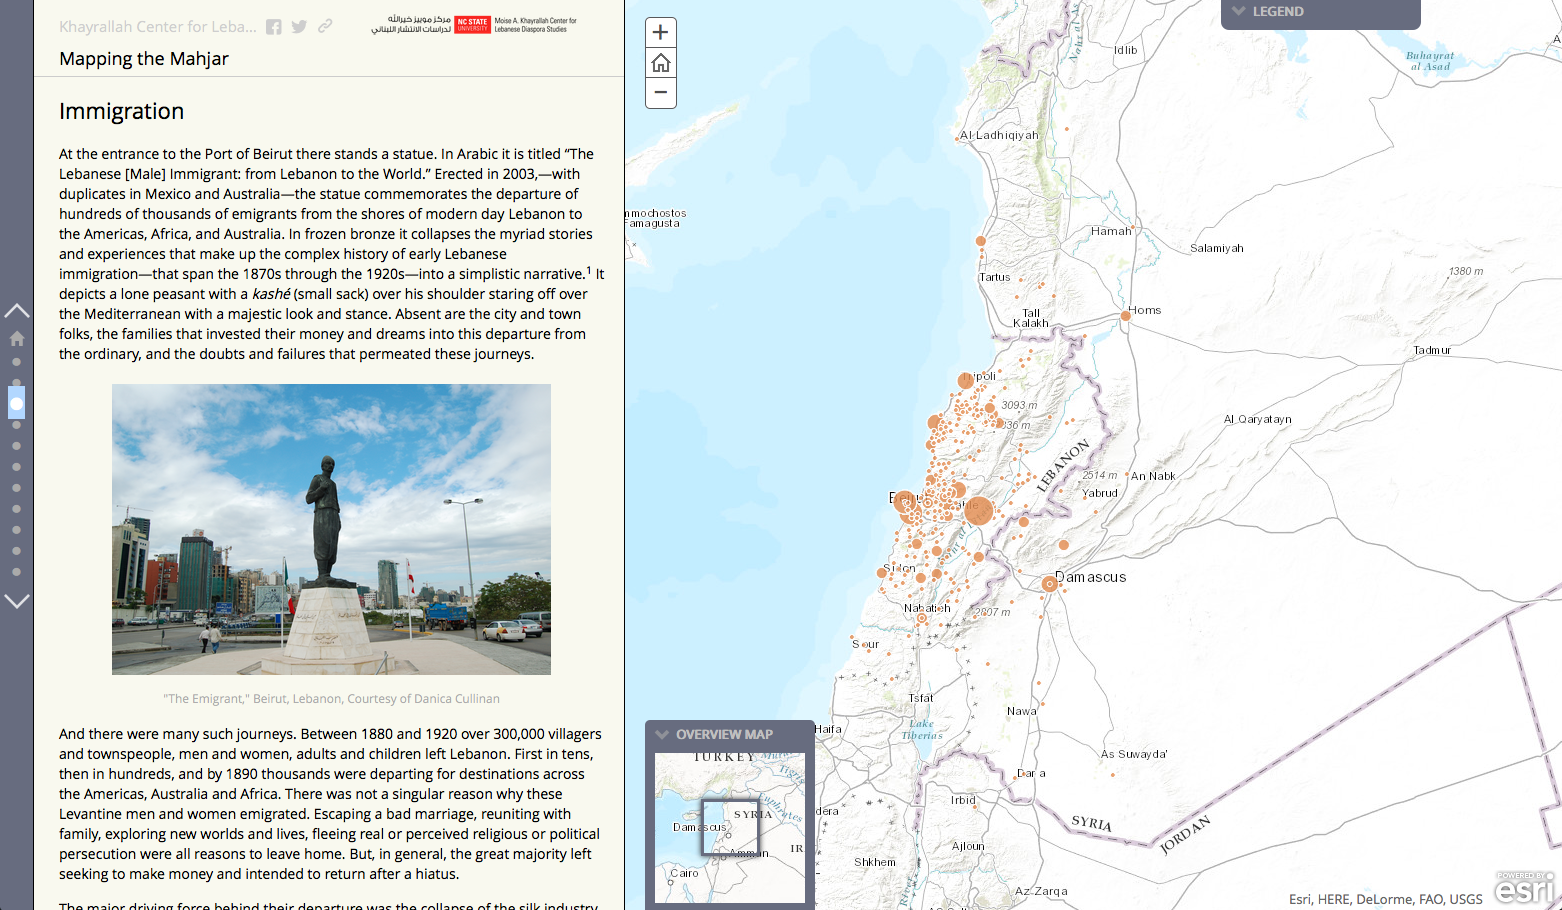 Mapping the Life, Work of Lebanese-American Business Owners